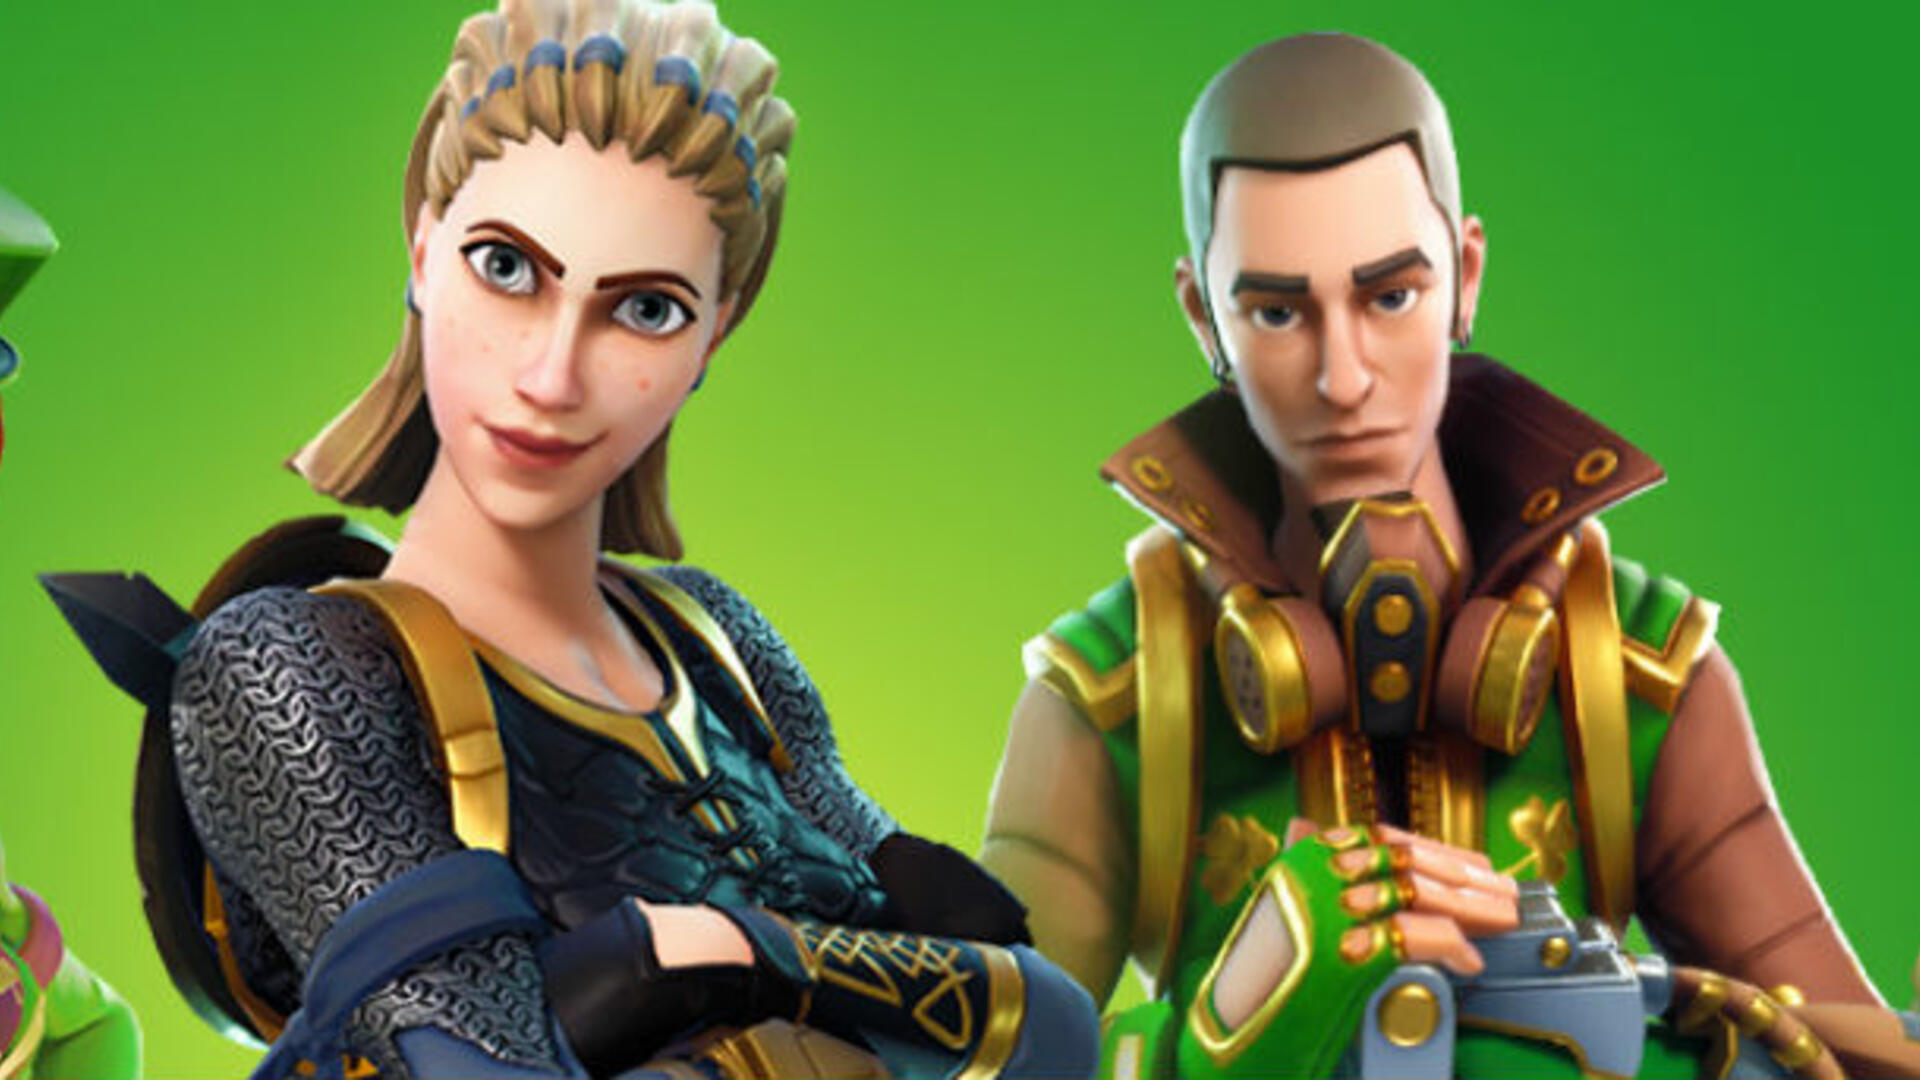 Fortnite V3.3 Now Live - Adds Llamas and Remote Explosives